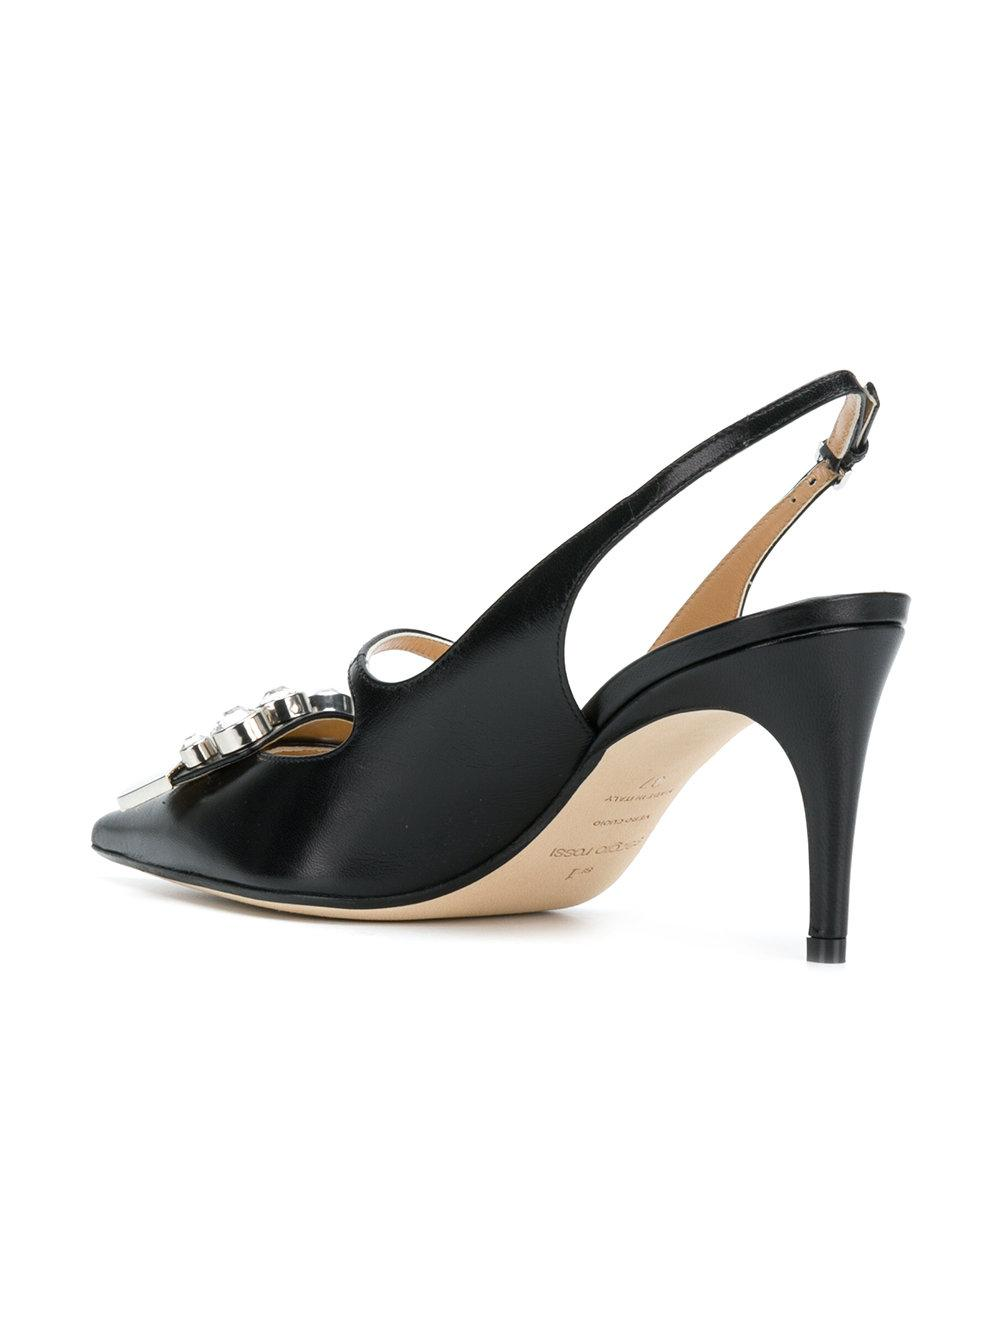 logo sling-back pumps - Black Sergio Rossi